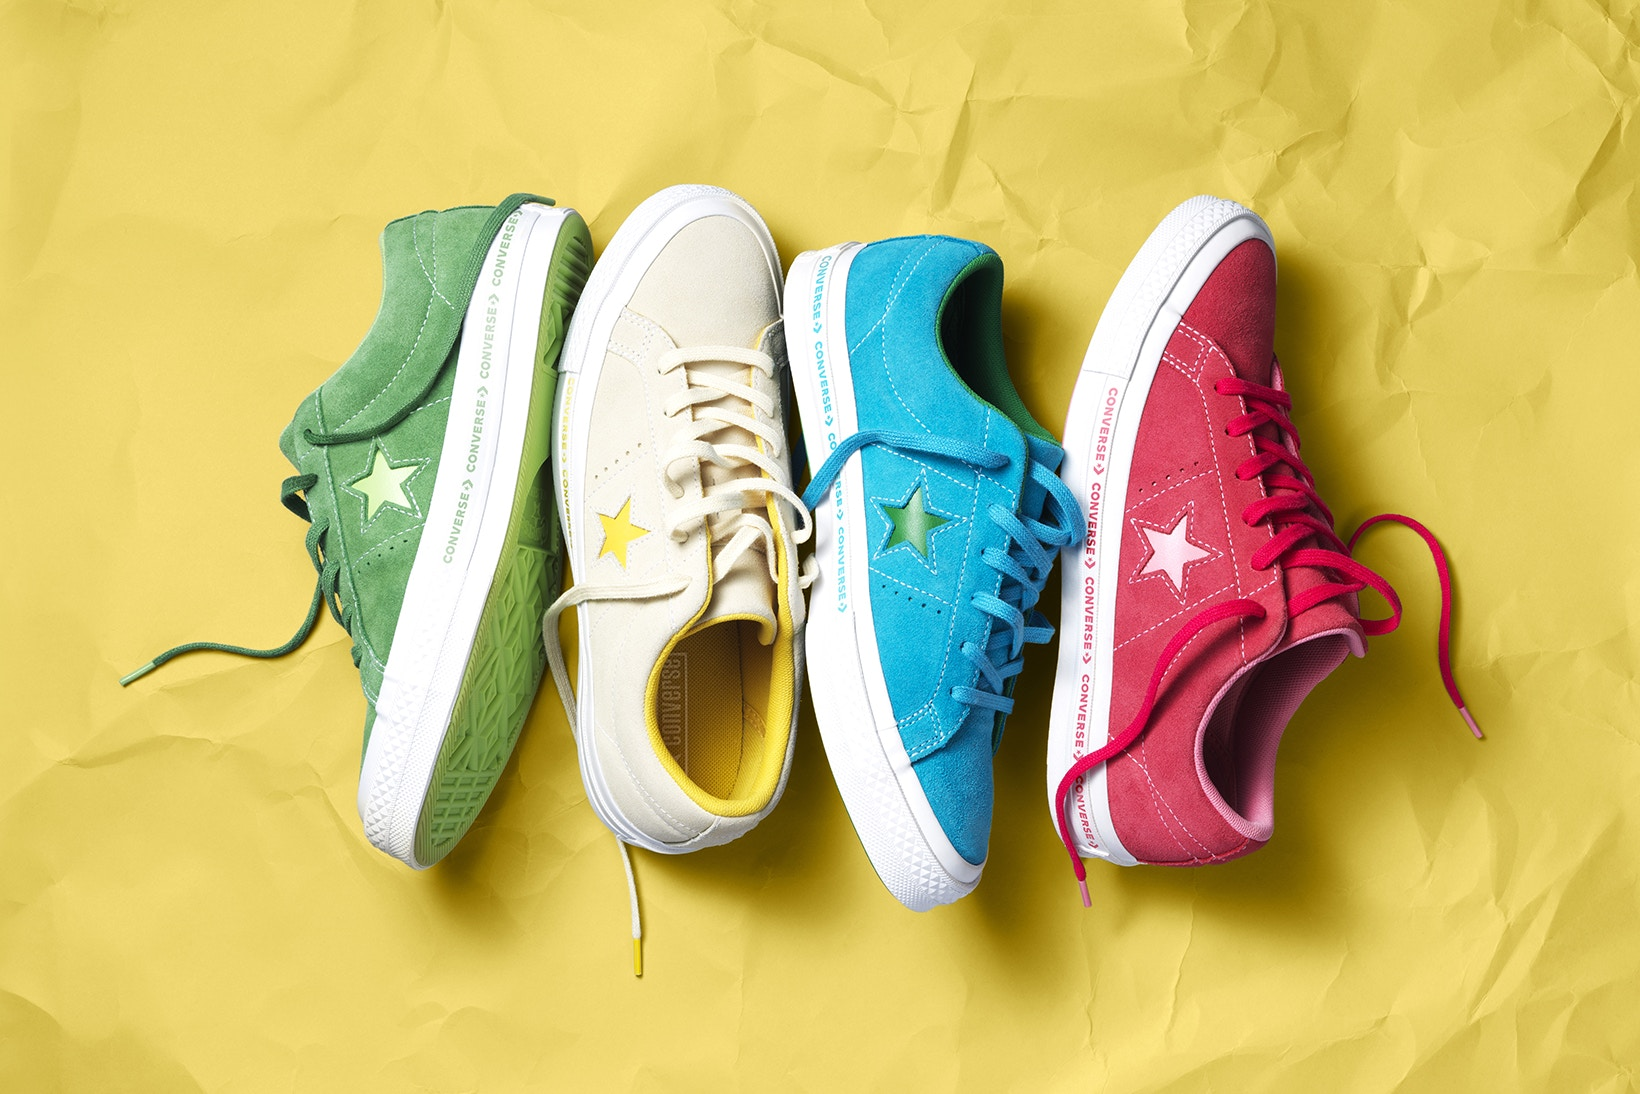 converse-one-star-2018-collection